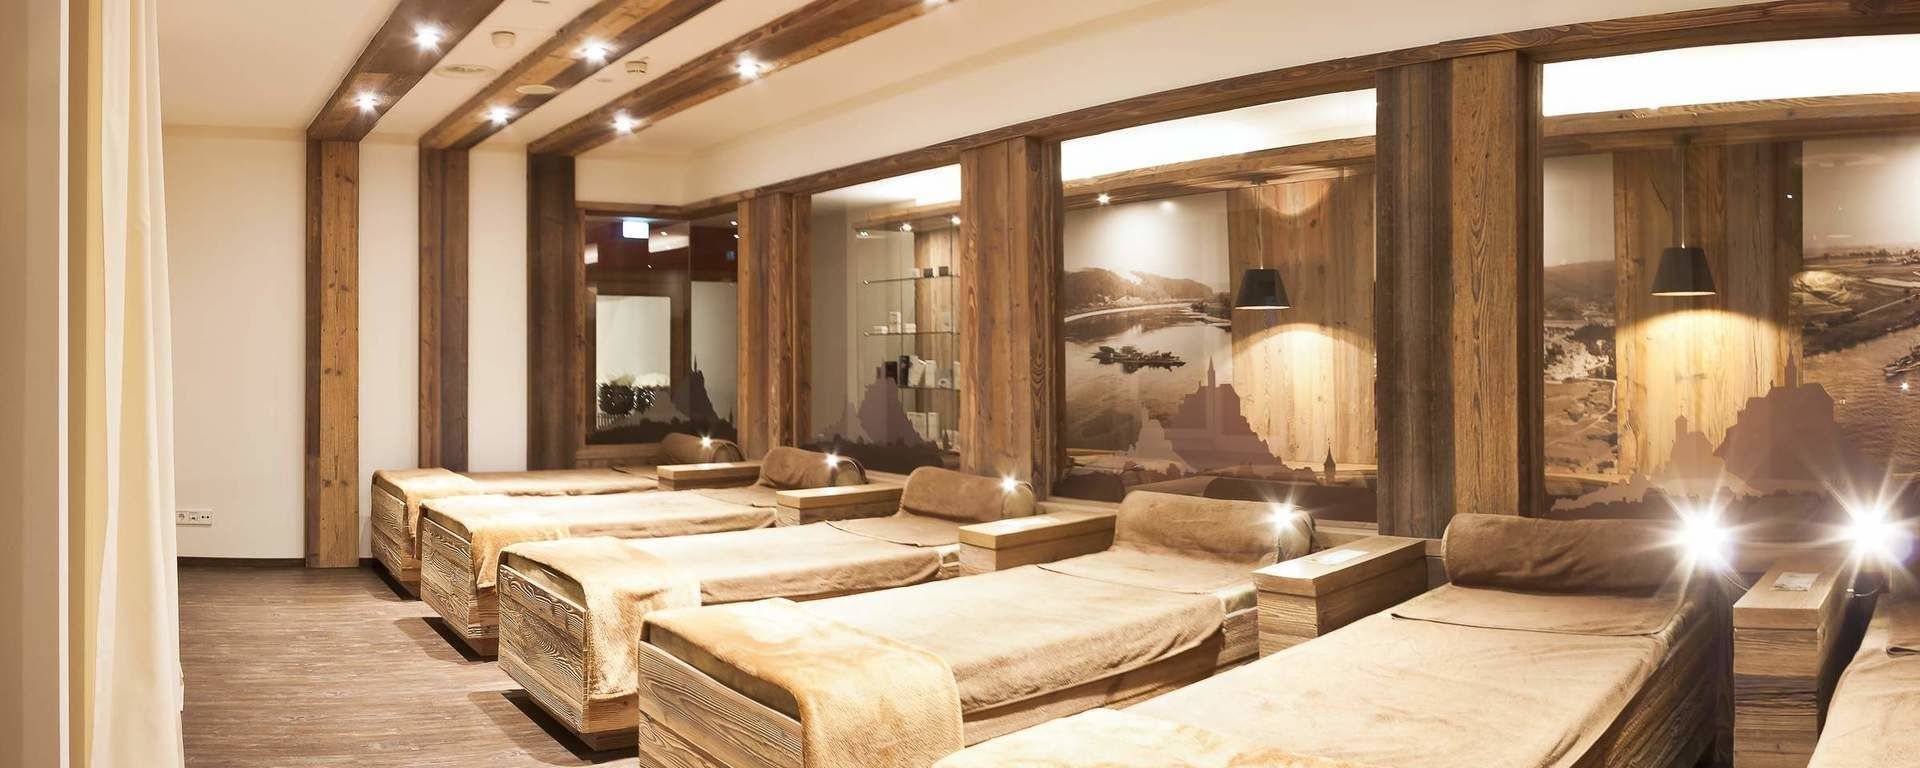 Wellness im Forsters Posthotel